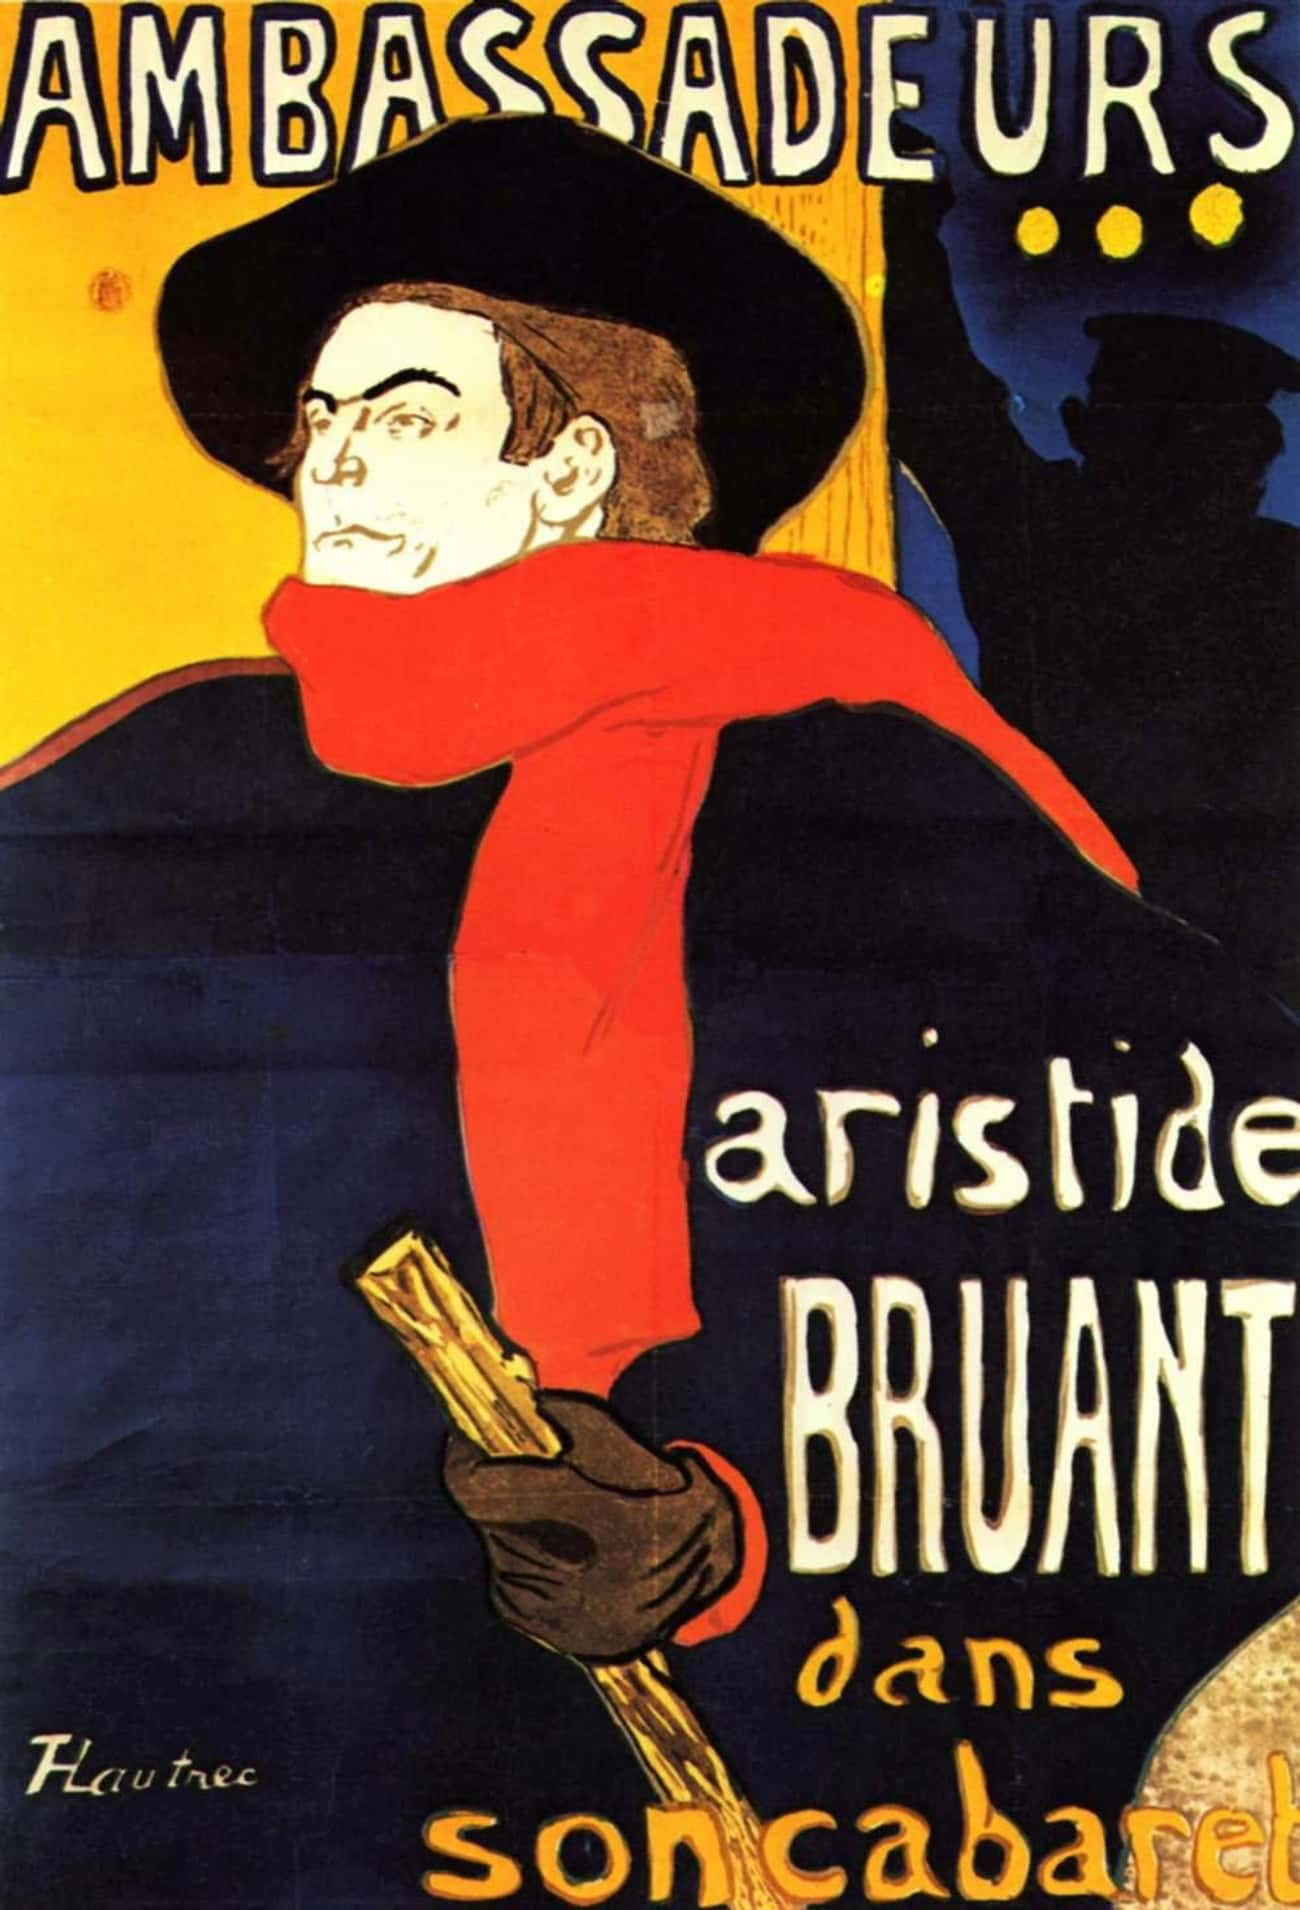 Ambassadeurs: Aristide Bruant  is listed (or ranked) 4 on the list Printmaking Art: Famous Works